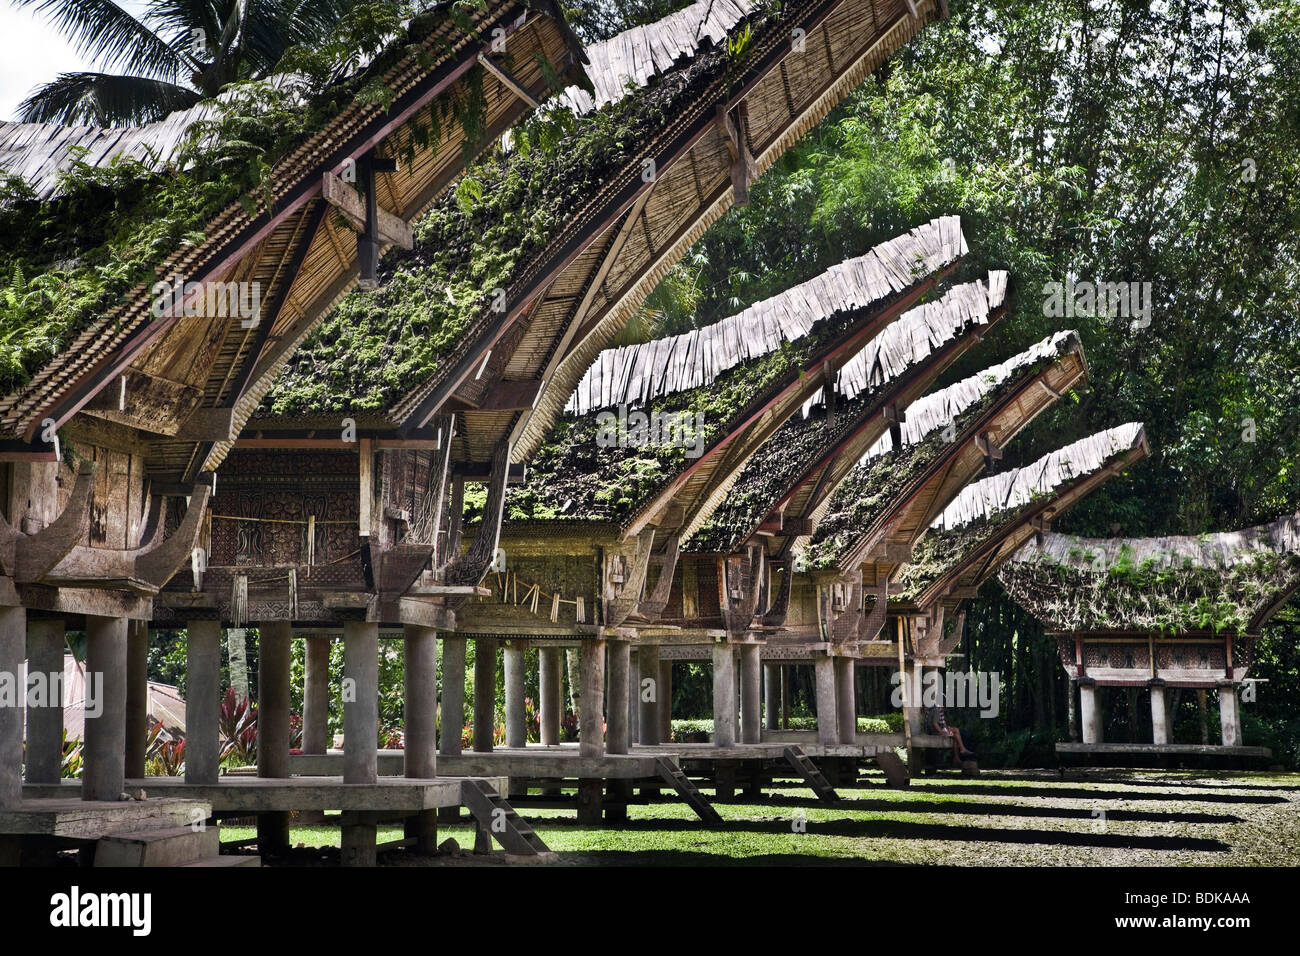 Indonesia, Sulawesi, Tana Toraja area, Kete Kesu' village, traditional Torajan house known as tongkonan - Stock Image